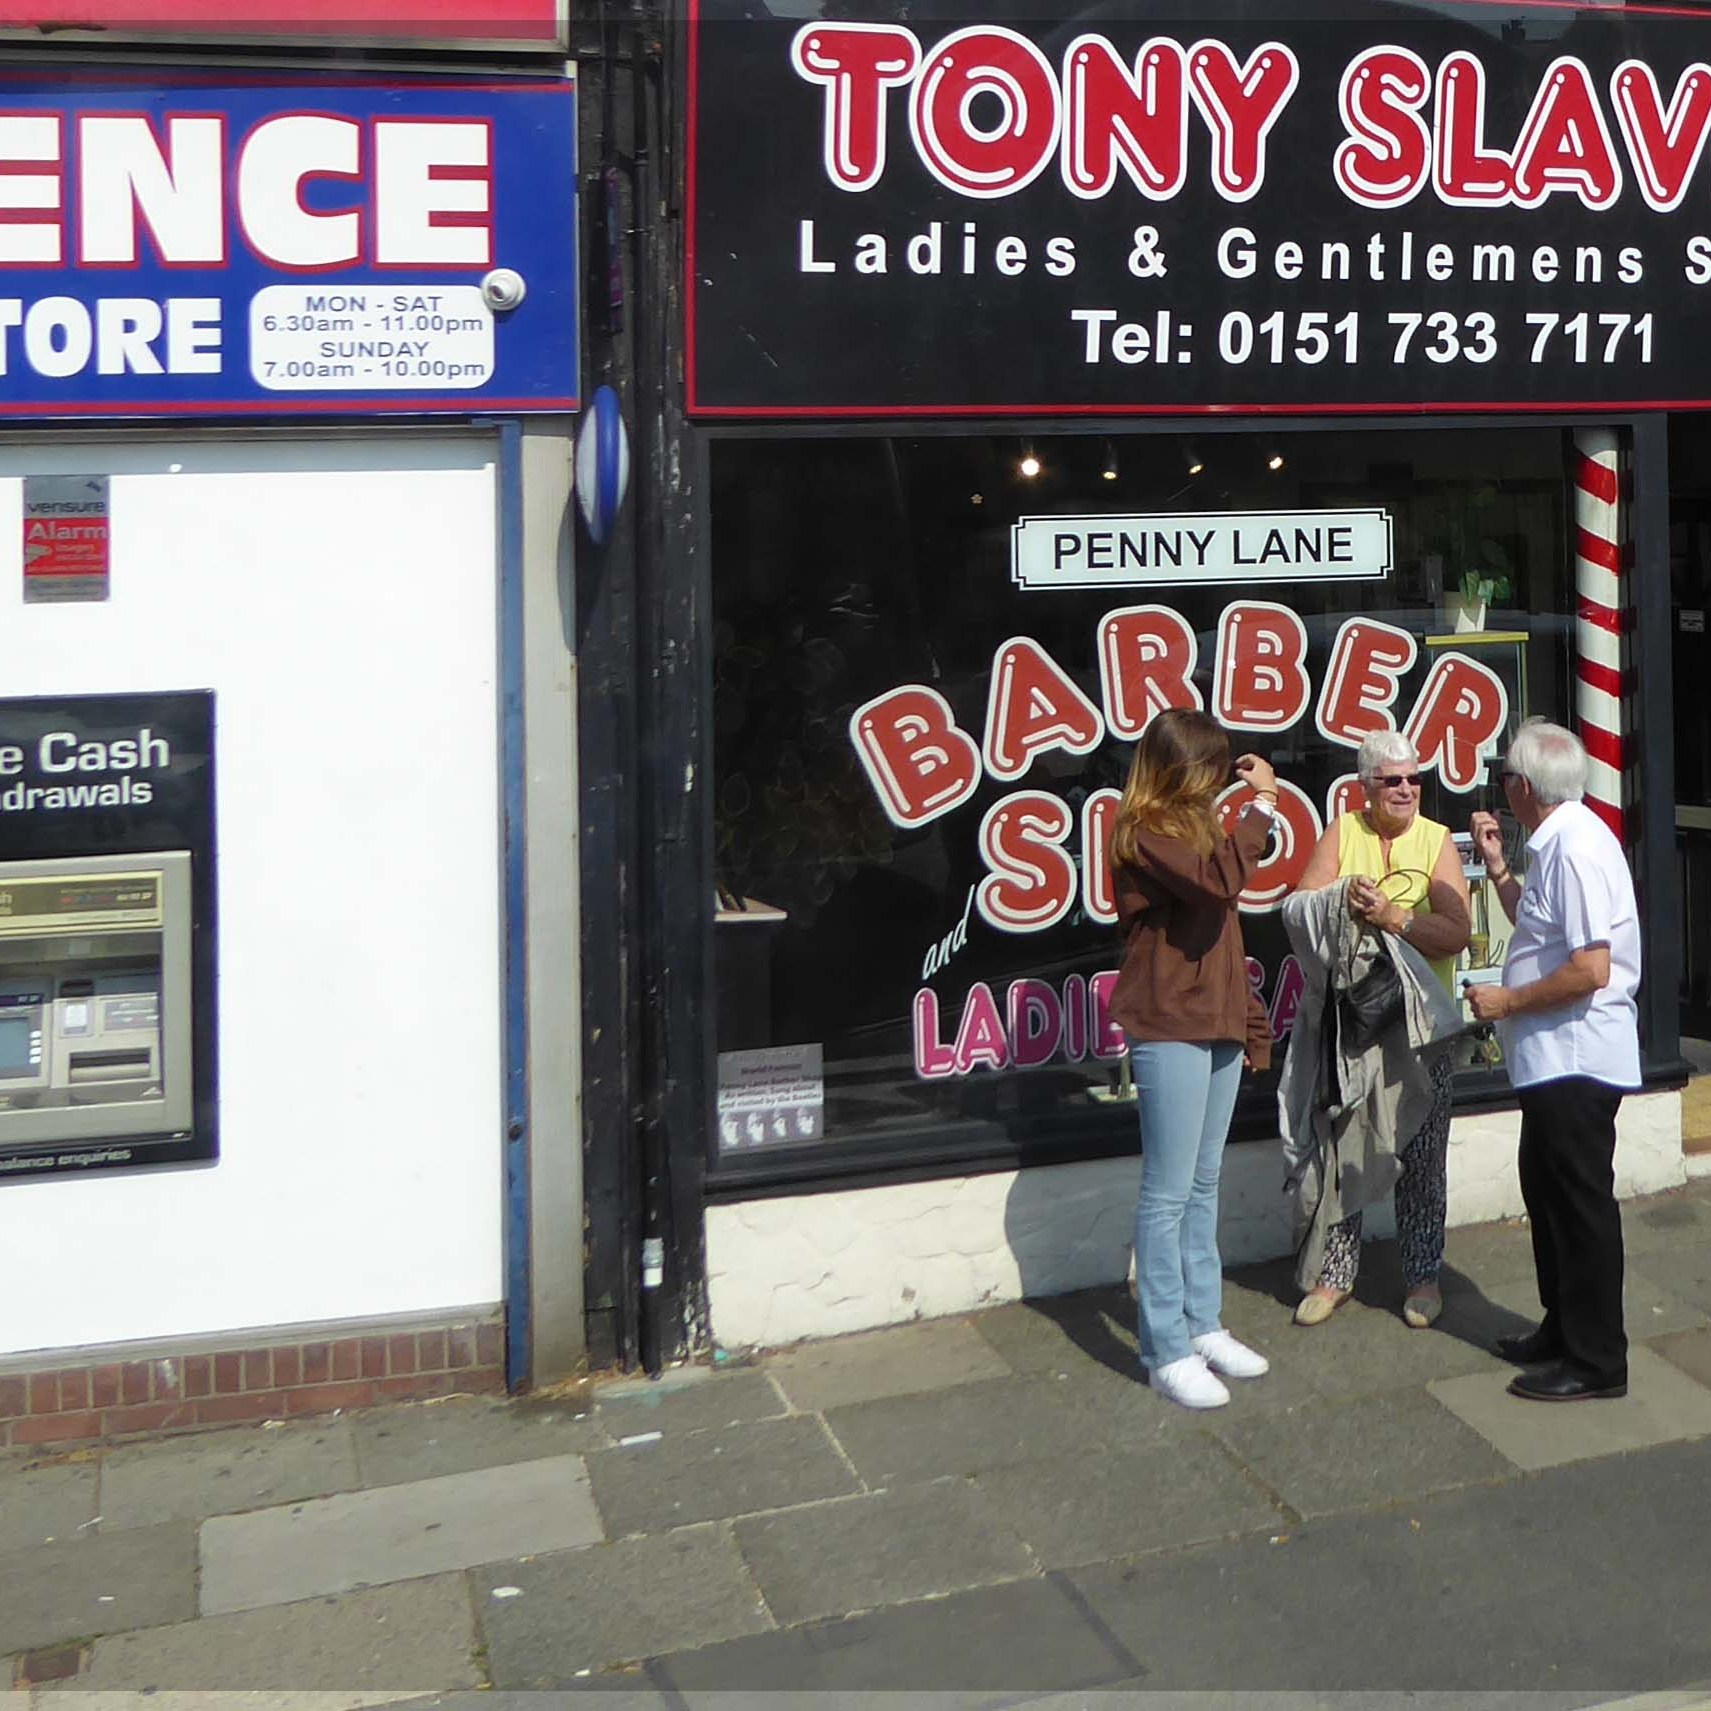 Street with barber's shop and cash machine, people talking outside